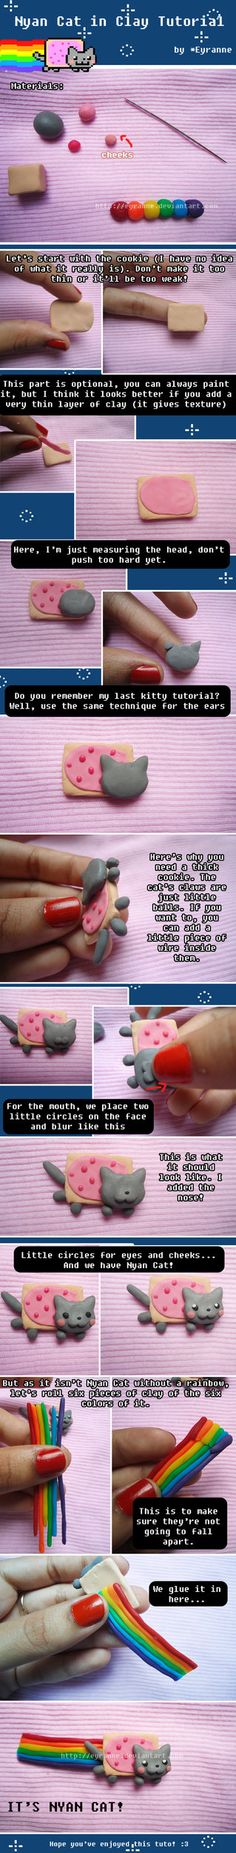 Tutorial Comment faire and Nyan Cat en Fimo Tutoriel Comment faire un Nyan Cat en Fimo is part of Clay crafts Cute – Cute Polymer Clay, Cute Clay, Polymer Clay Miniatures, Fimo Clay, Polymer Clay Projects, Polymer Clay Charms, Polymer Clay Creations, Polymer Clay Jewelry, Clay Crafts